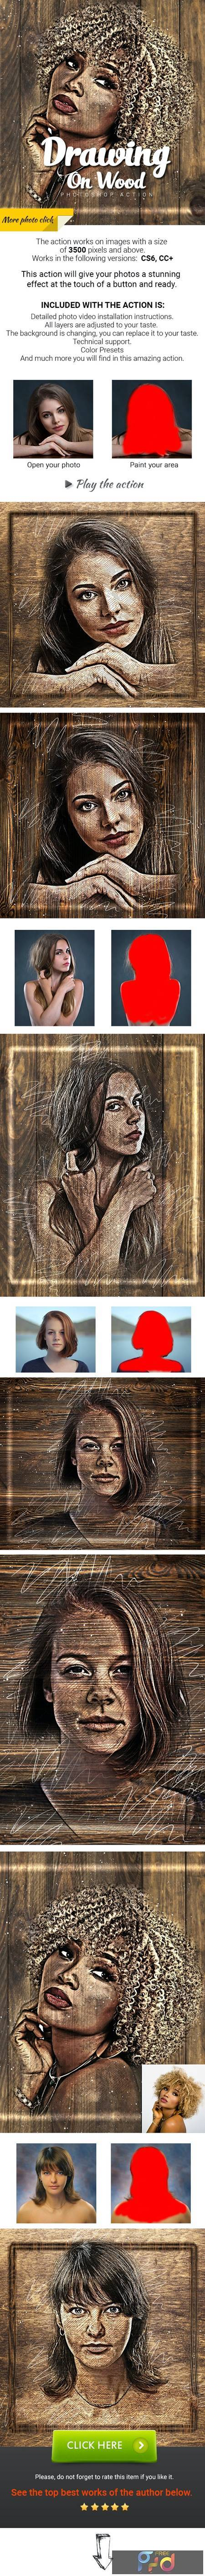 Drawing on Wood Photoshop Action 27545130 1